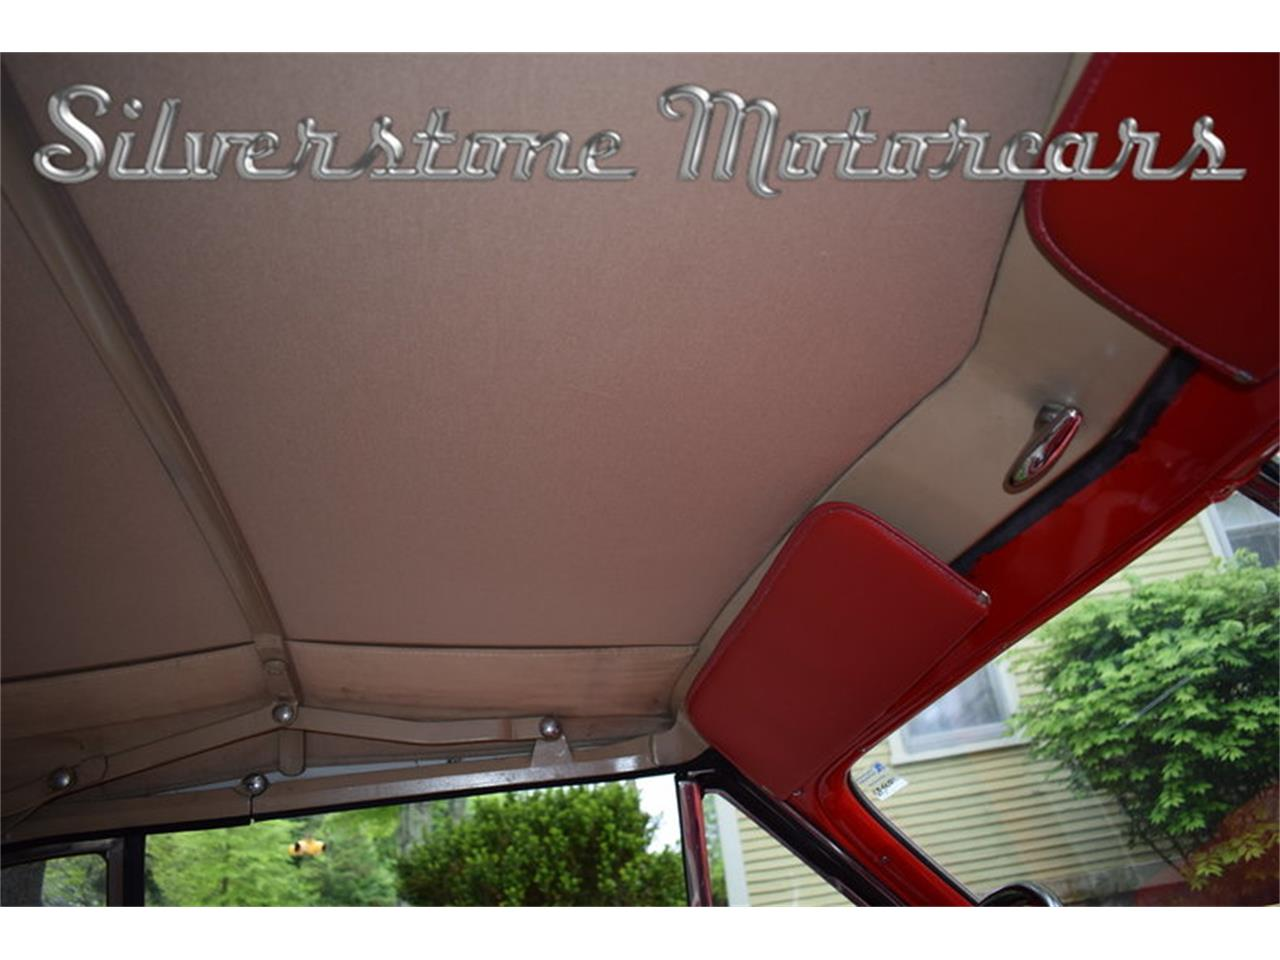 Large Picture of Classic 1951 Ford Custom Deluxe located in North Andover Massachusetts - $39,000.00 Offered by Silverstone Motorcars - L79S